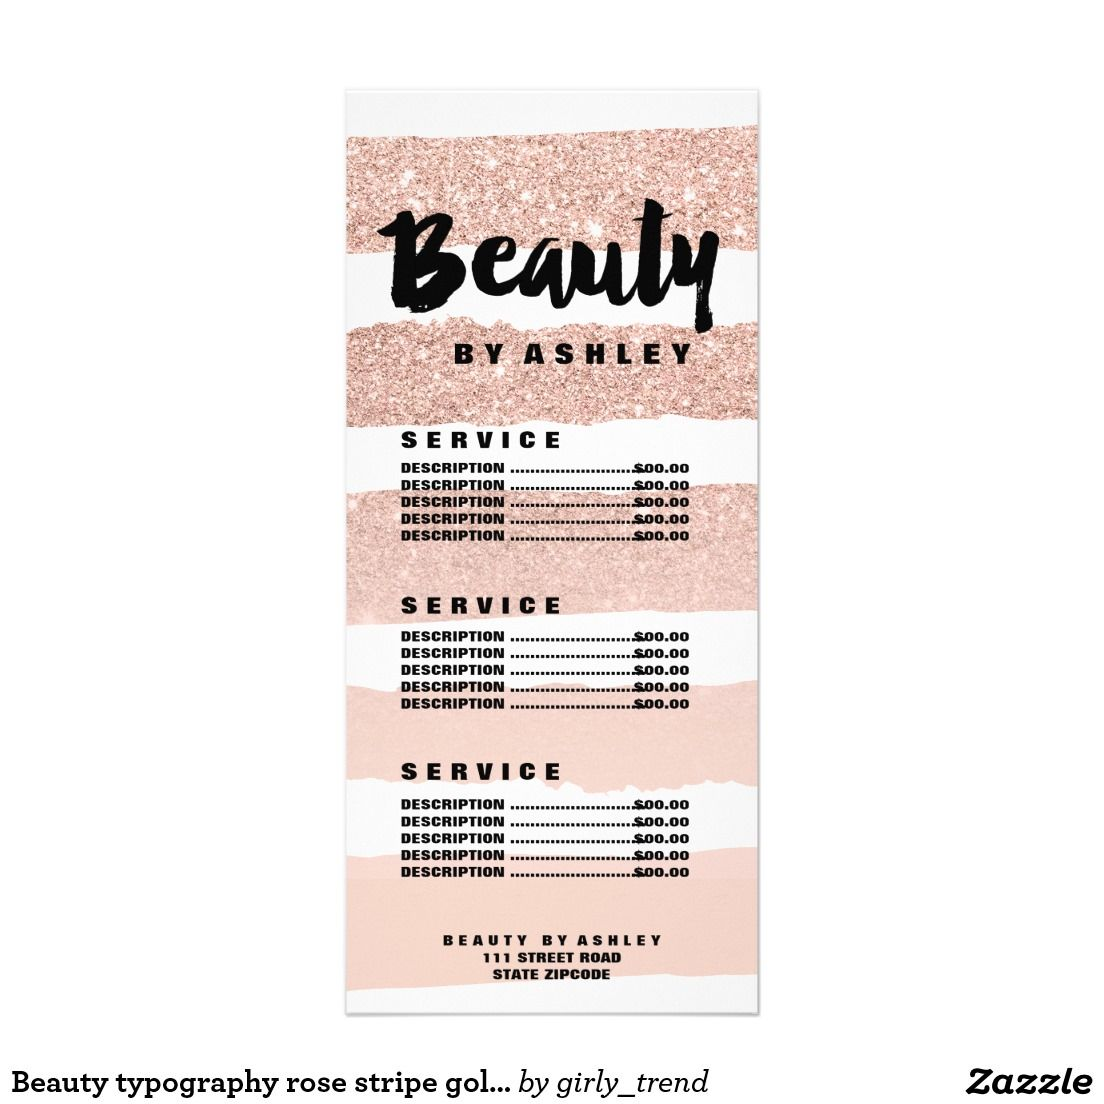 Beauty typography rose stripe gold price list rack card | Business ...